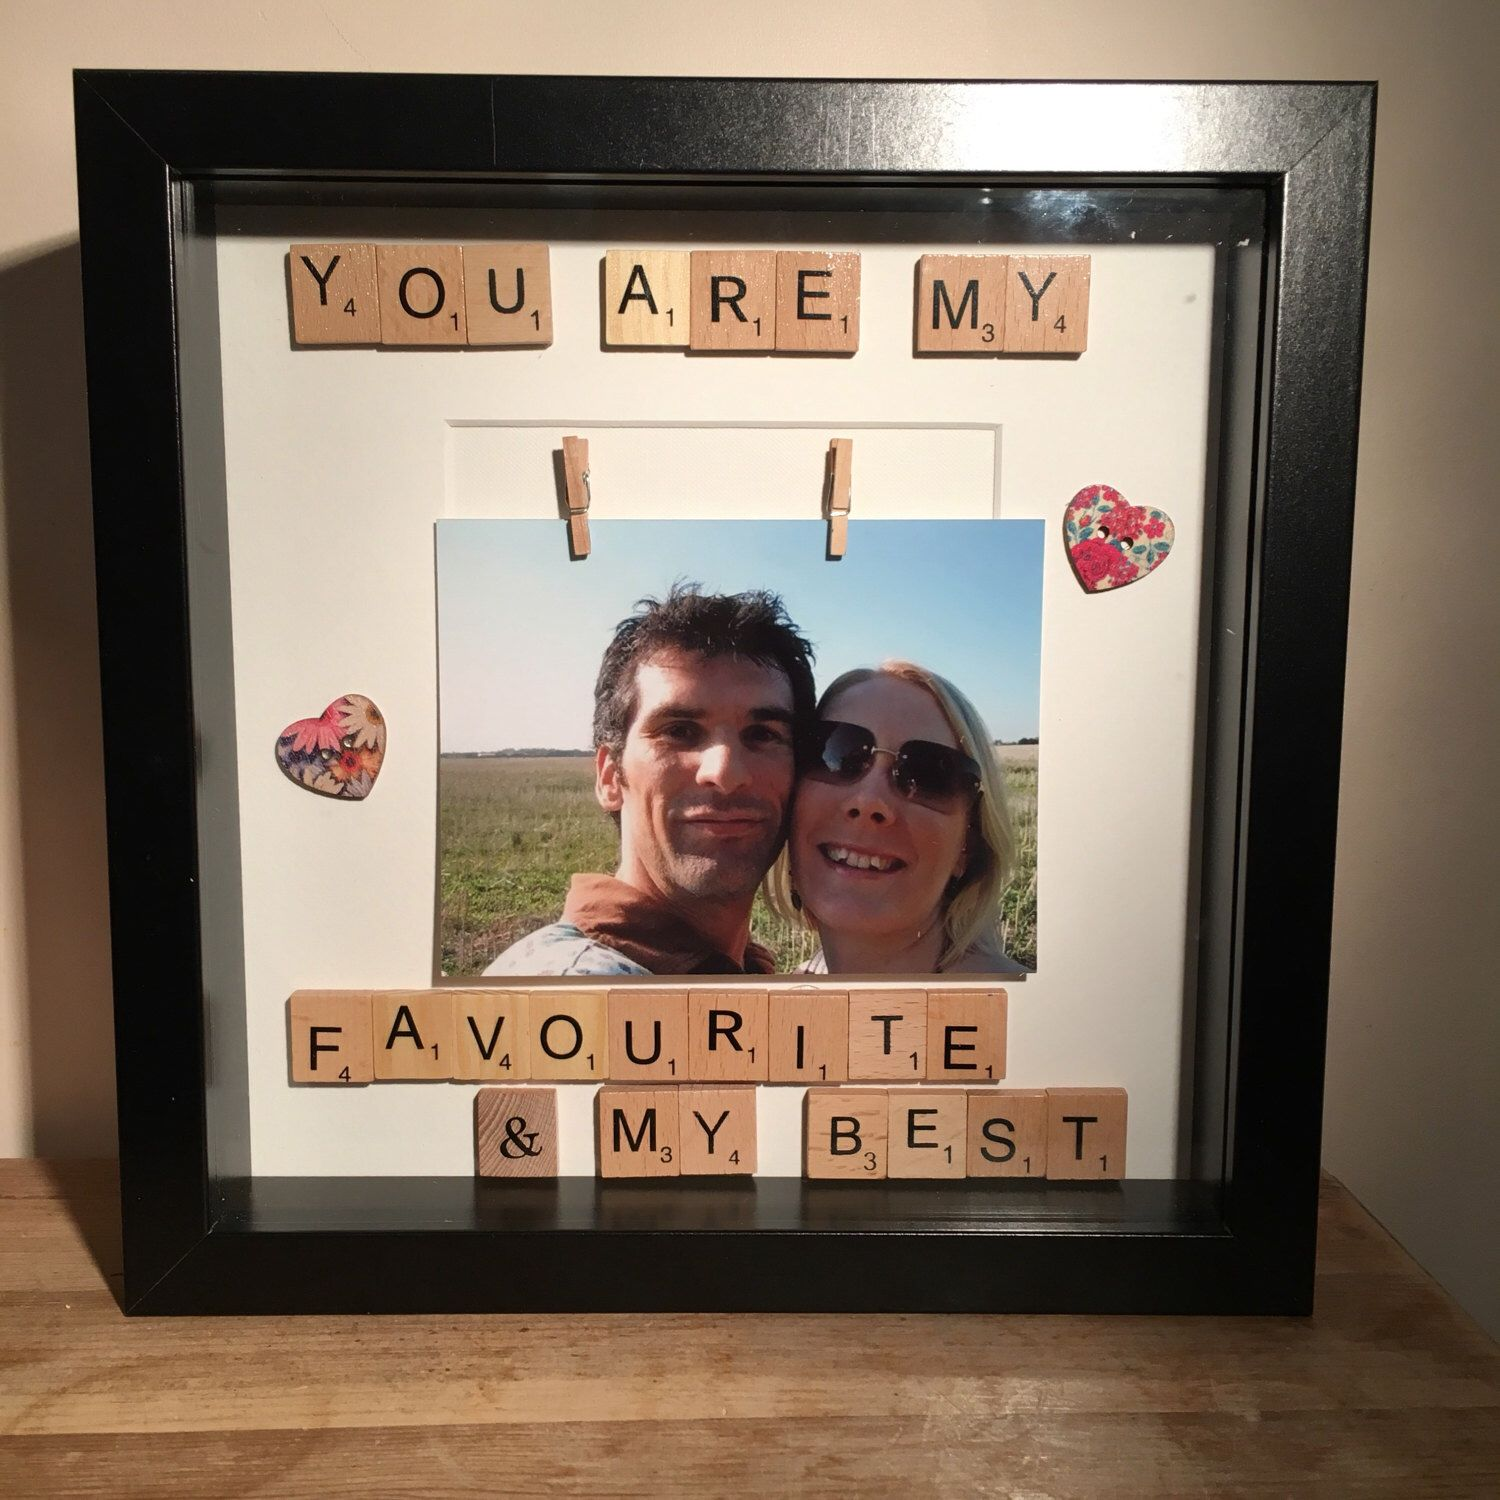 Favourite and best photo frame scrabble frame best